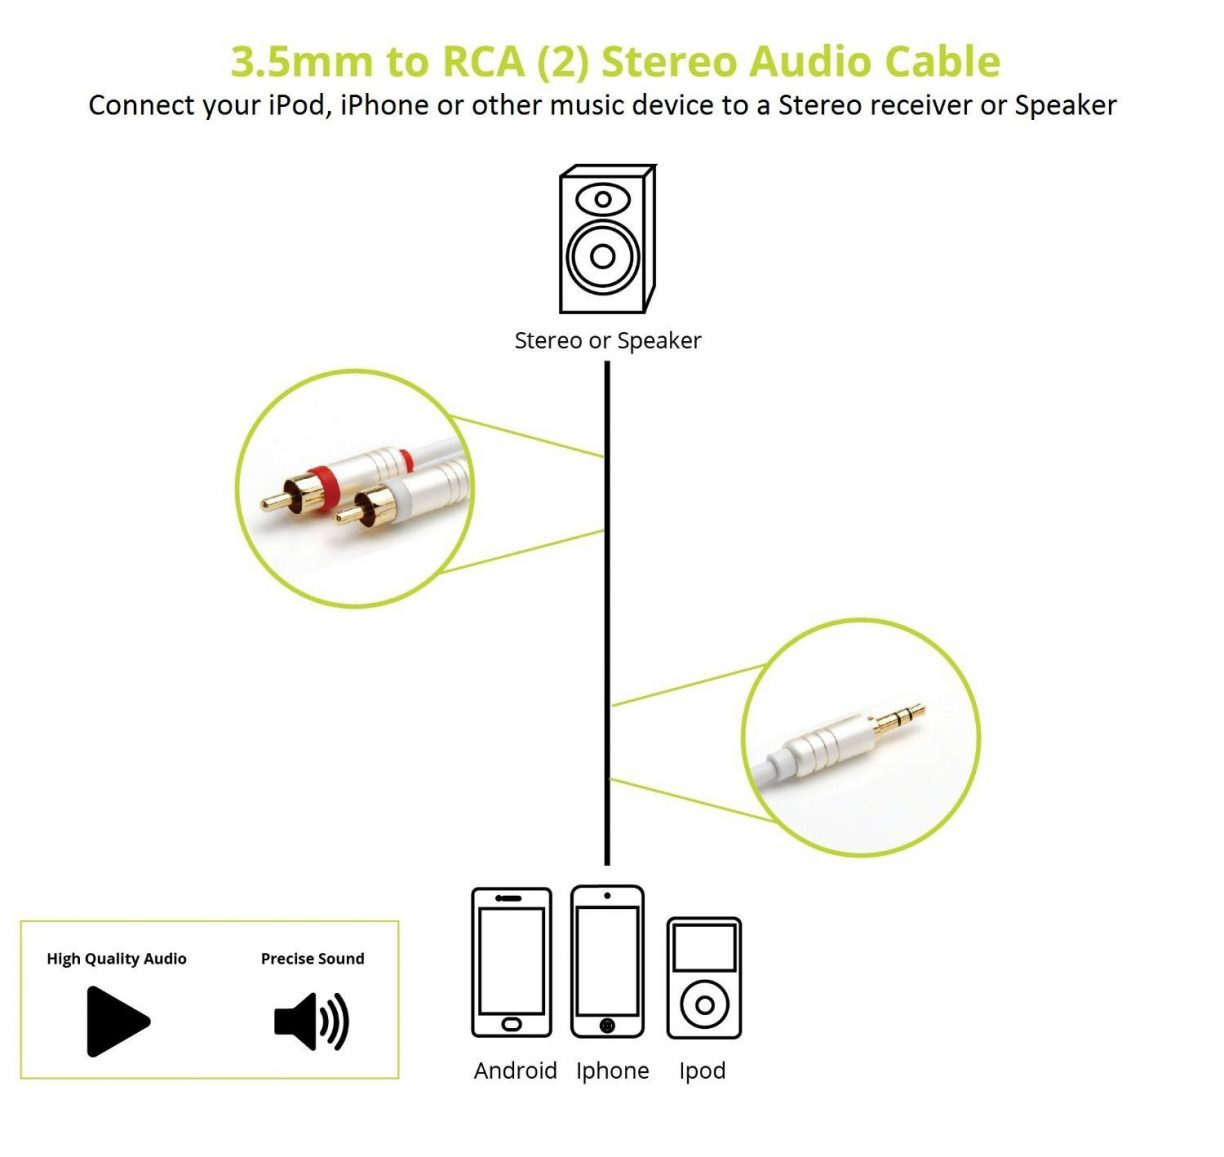 Audio Cable Wiring Diagram Mfi Lightning Jack Adapter Ipod Wiringam - Usb To Iphone 5 Cable Wiring Diagram